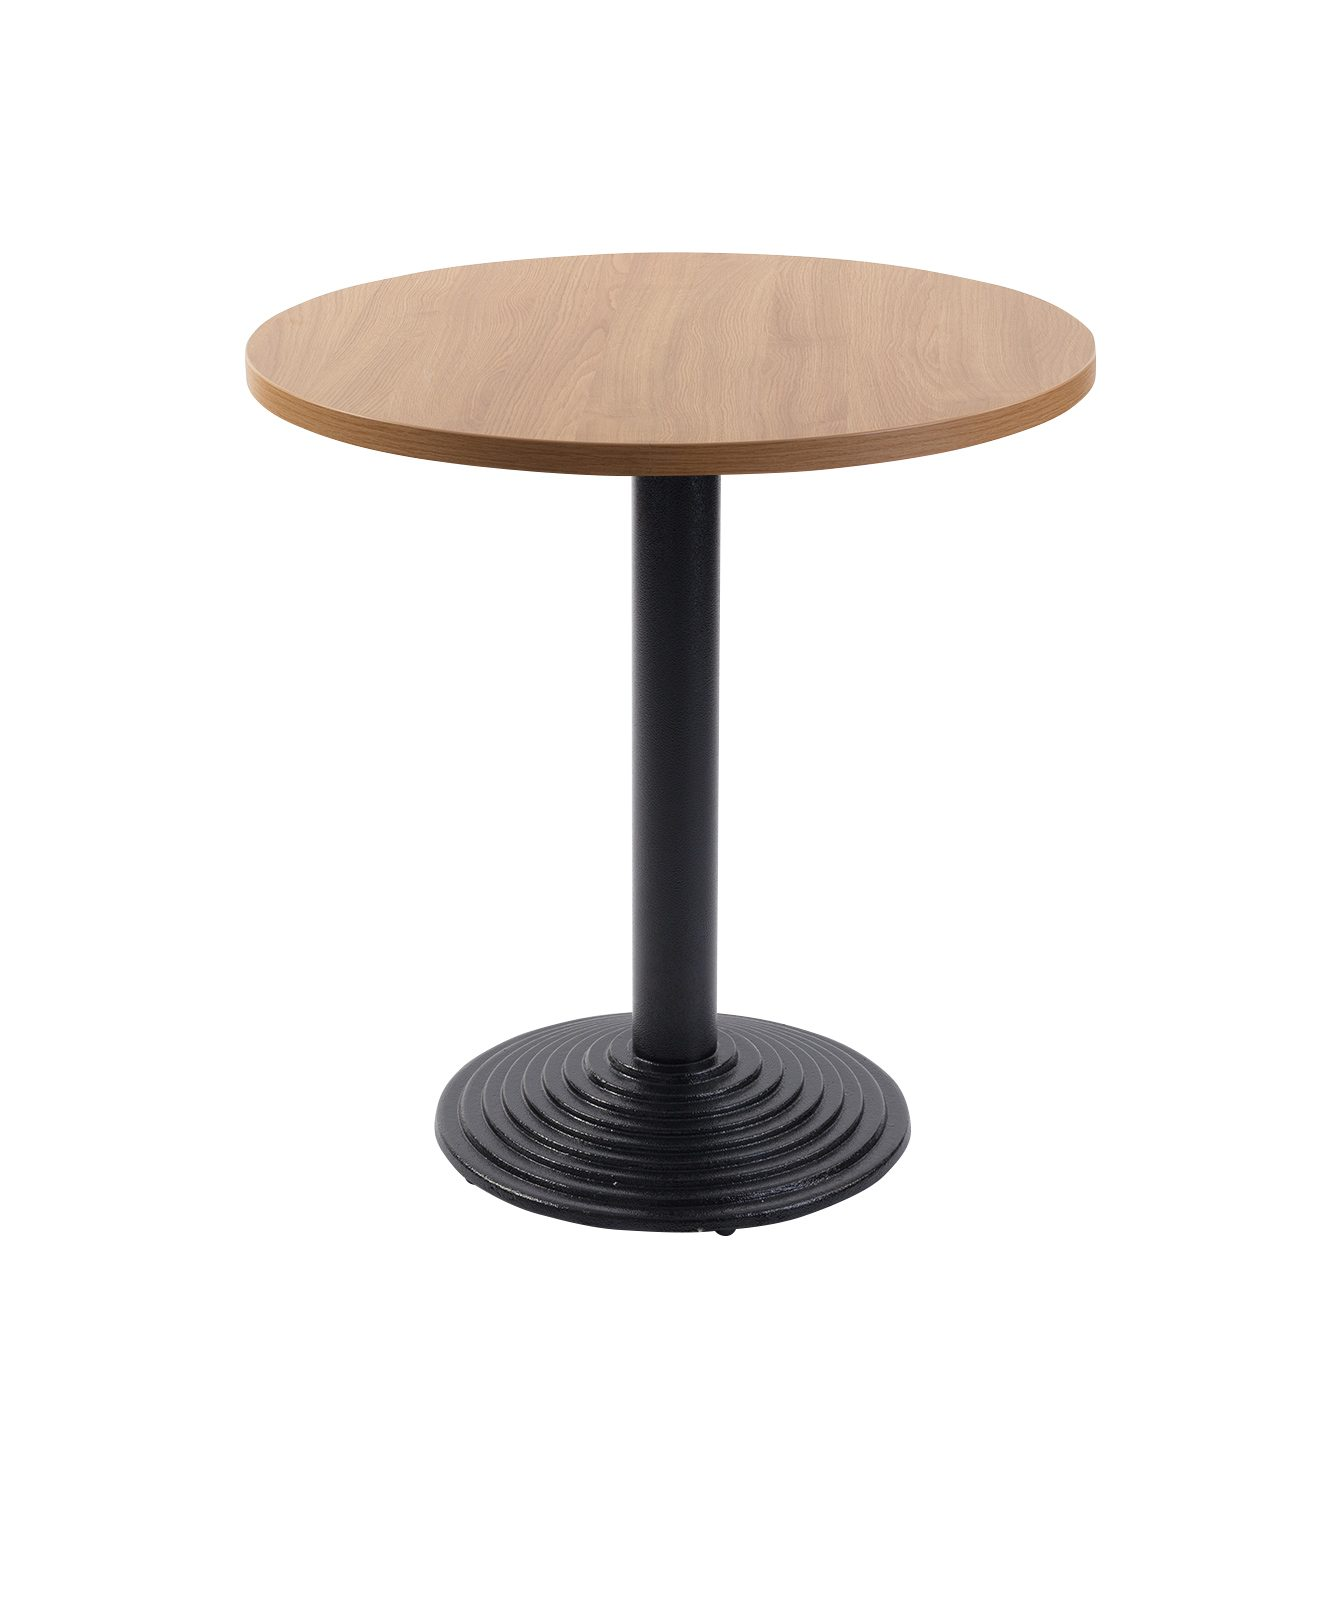 Mayosi Round Coffee Table Base Round Wood Top